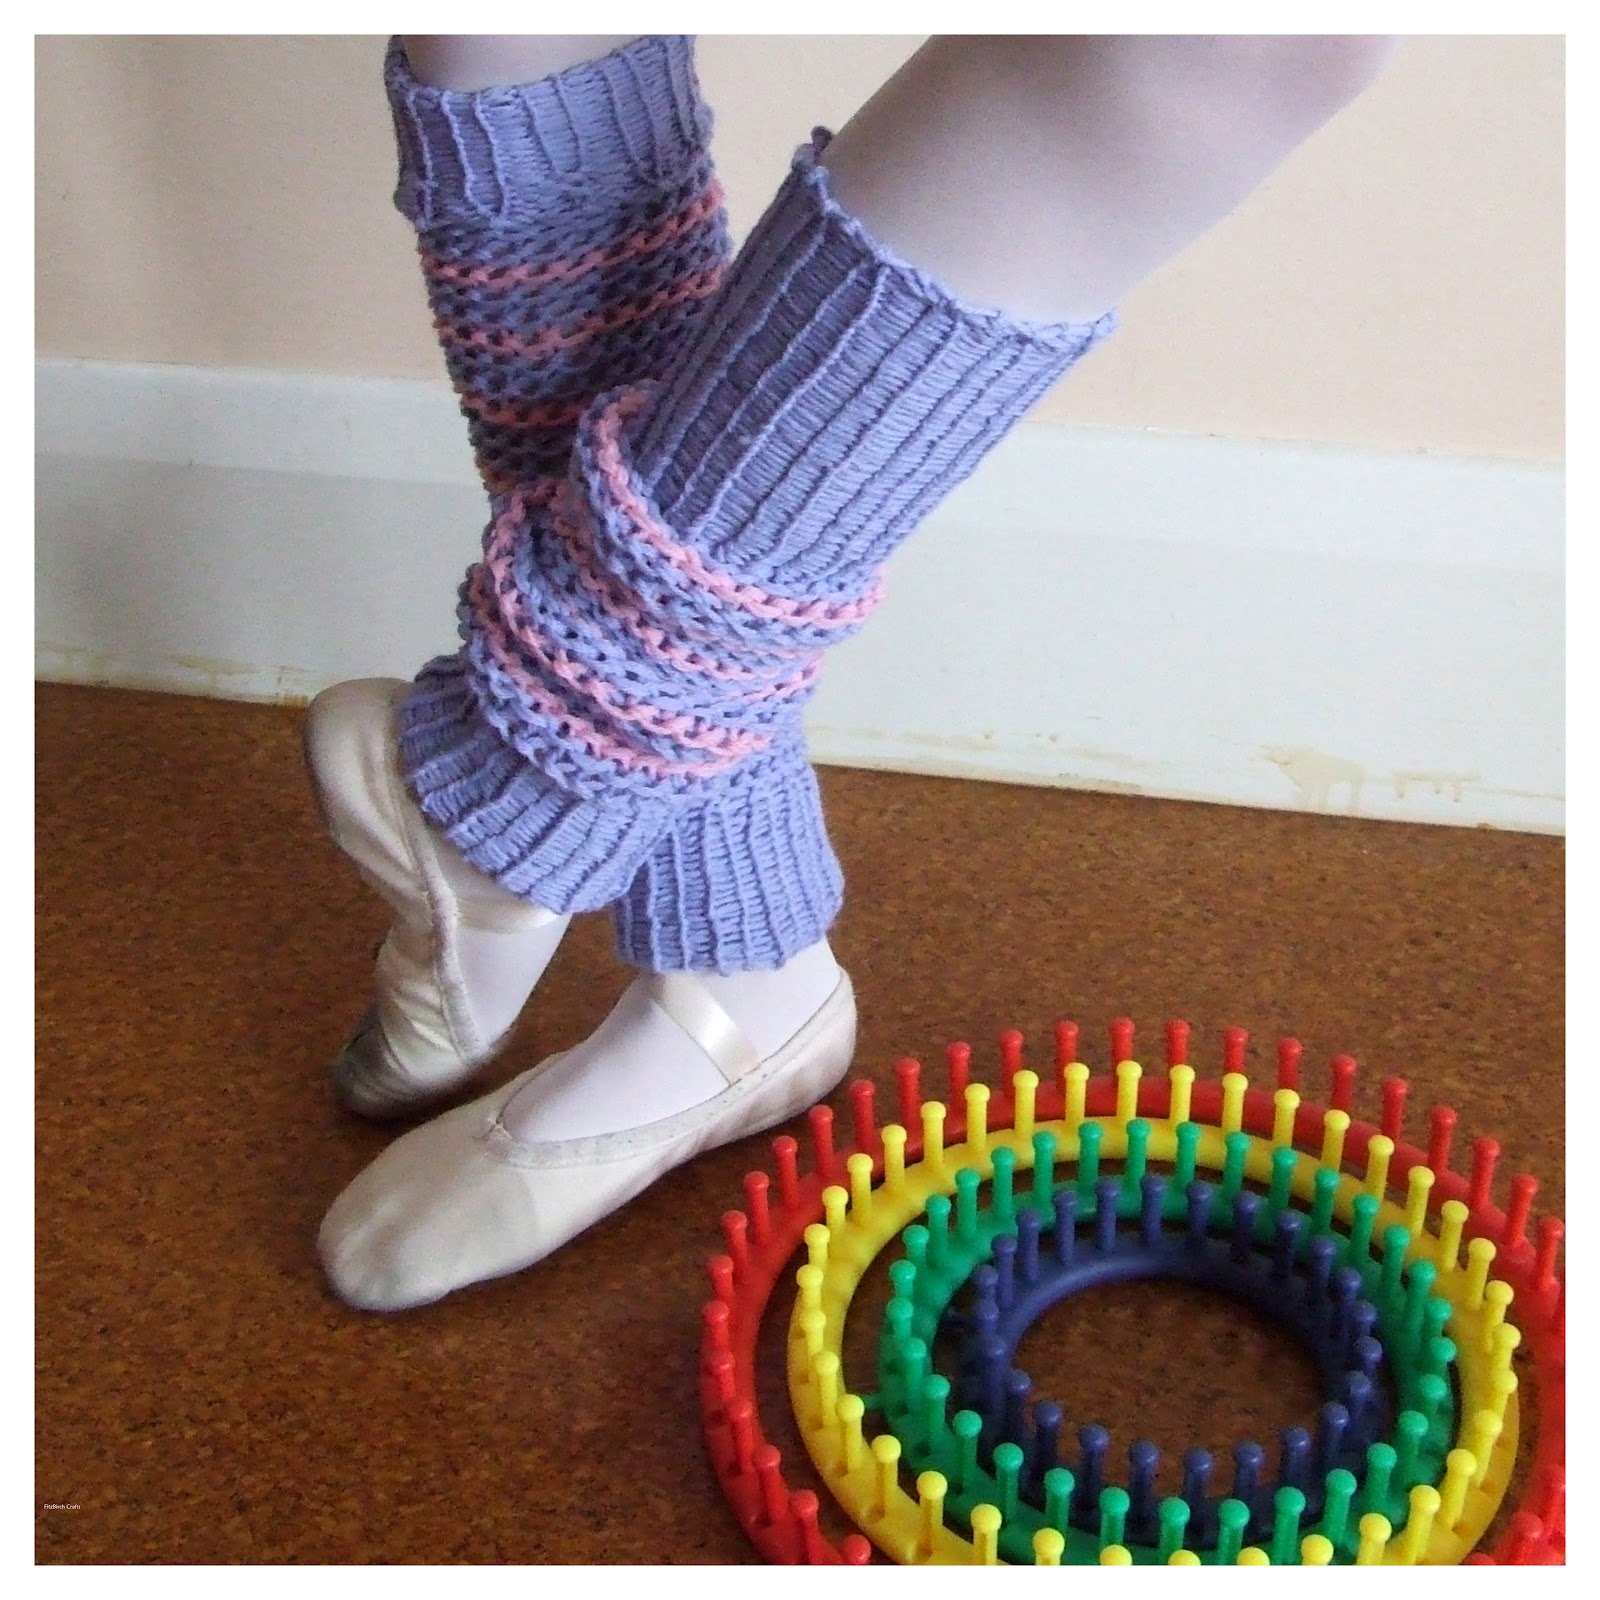 Loom Knitting Pattern For Leg Warmers : FitzBirch Crafts: Knifty Loom Knit Leg Warmers